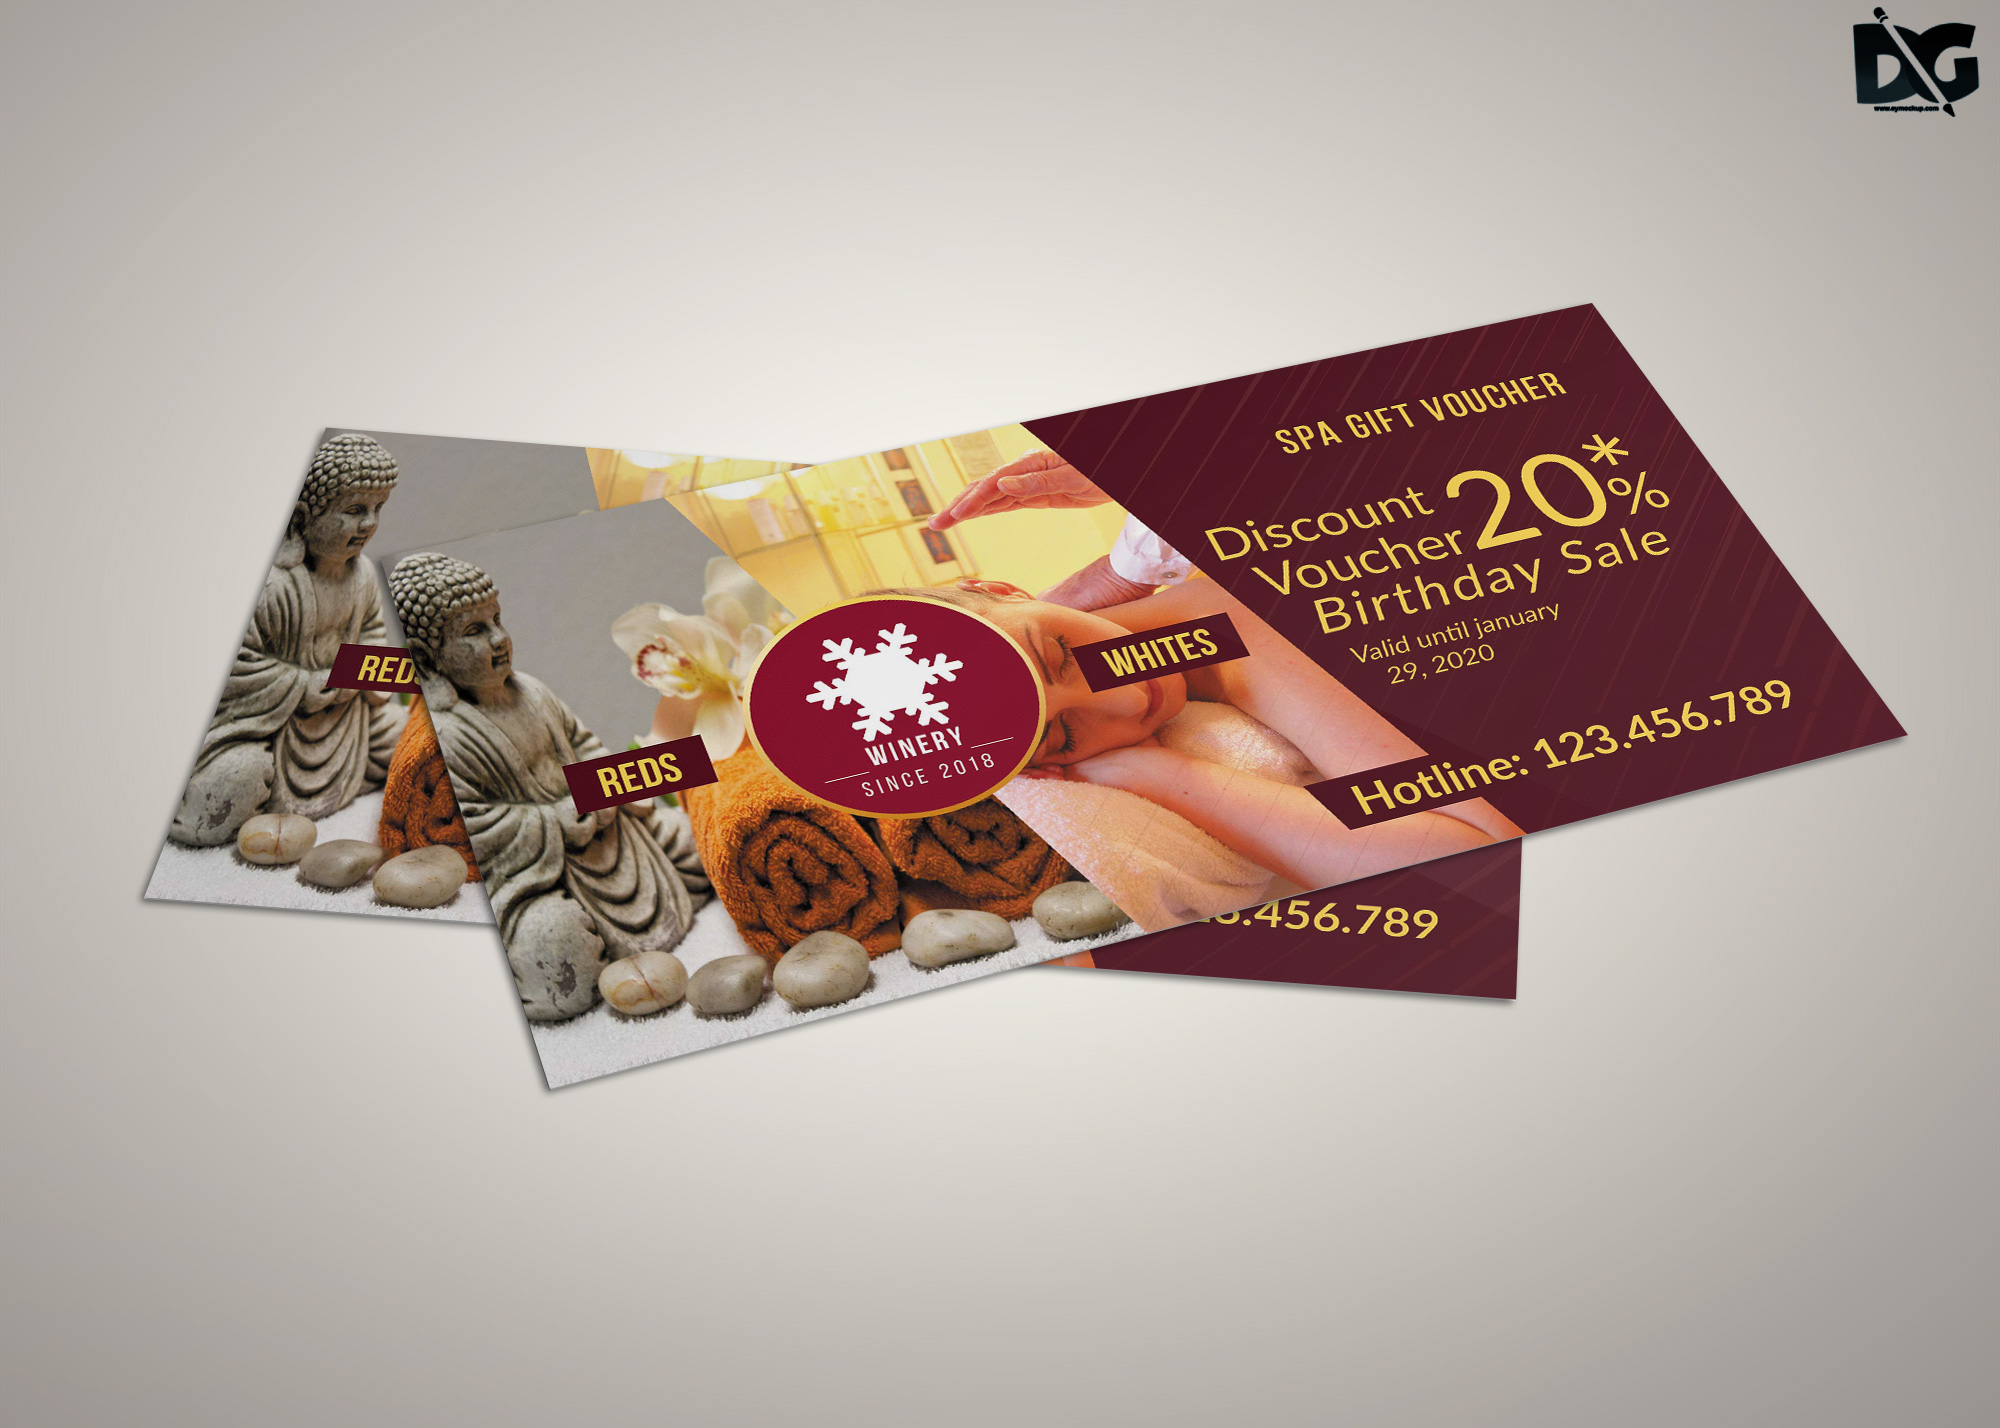 Free Download PSD Diwali Shopping Gift Card Template